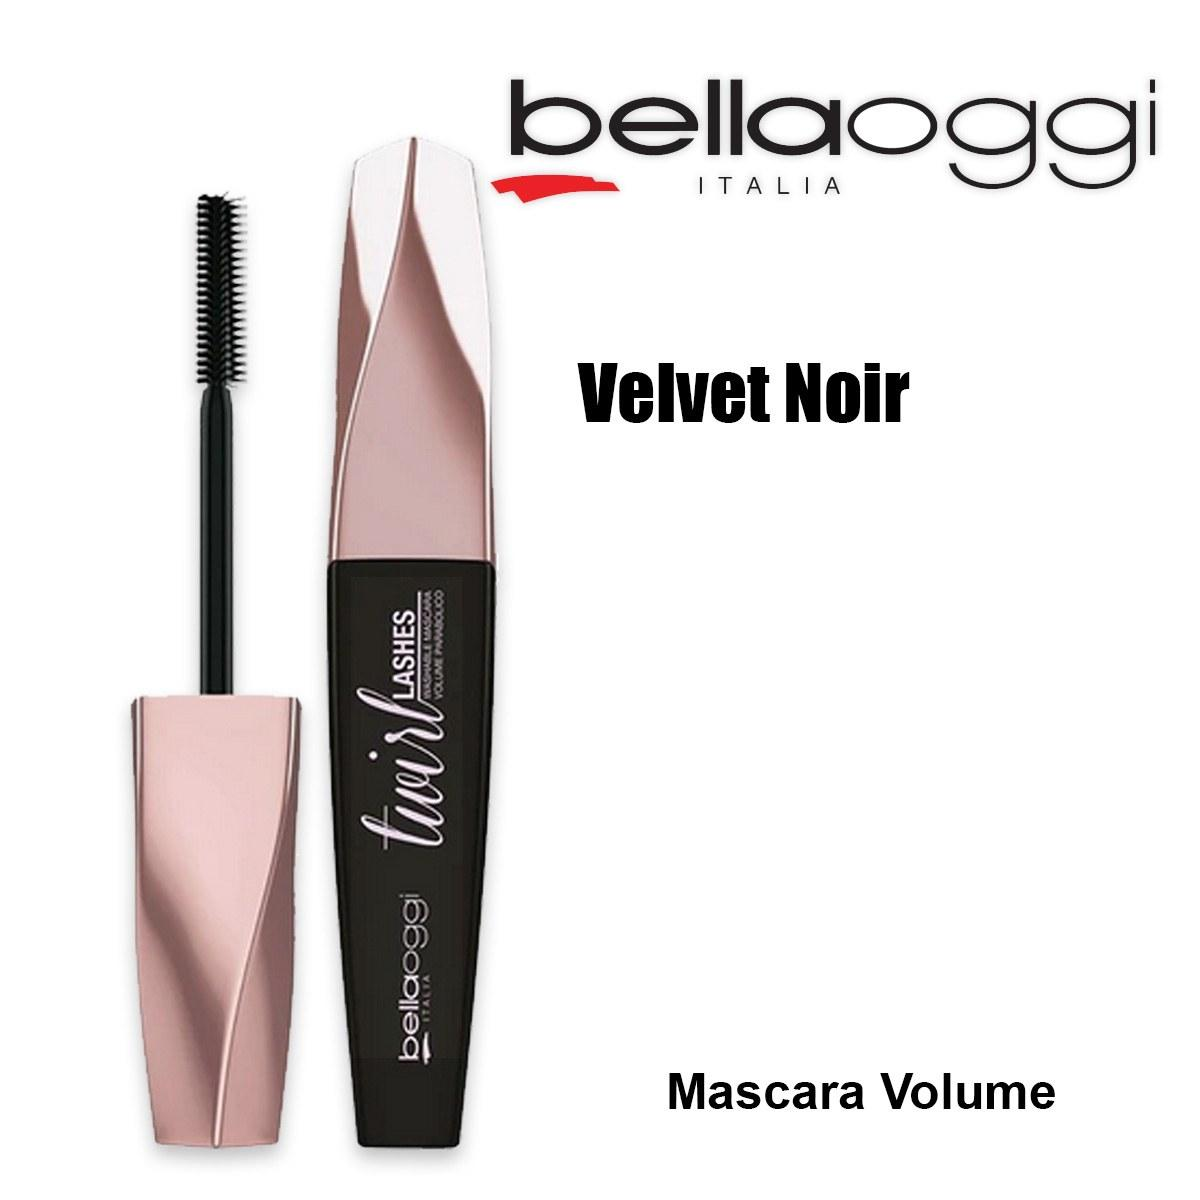 Twirl lashes mascara volume washable 64% velvet noir